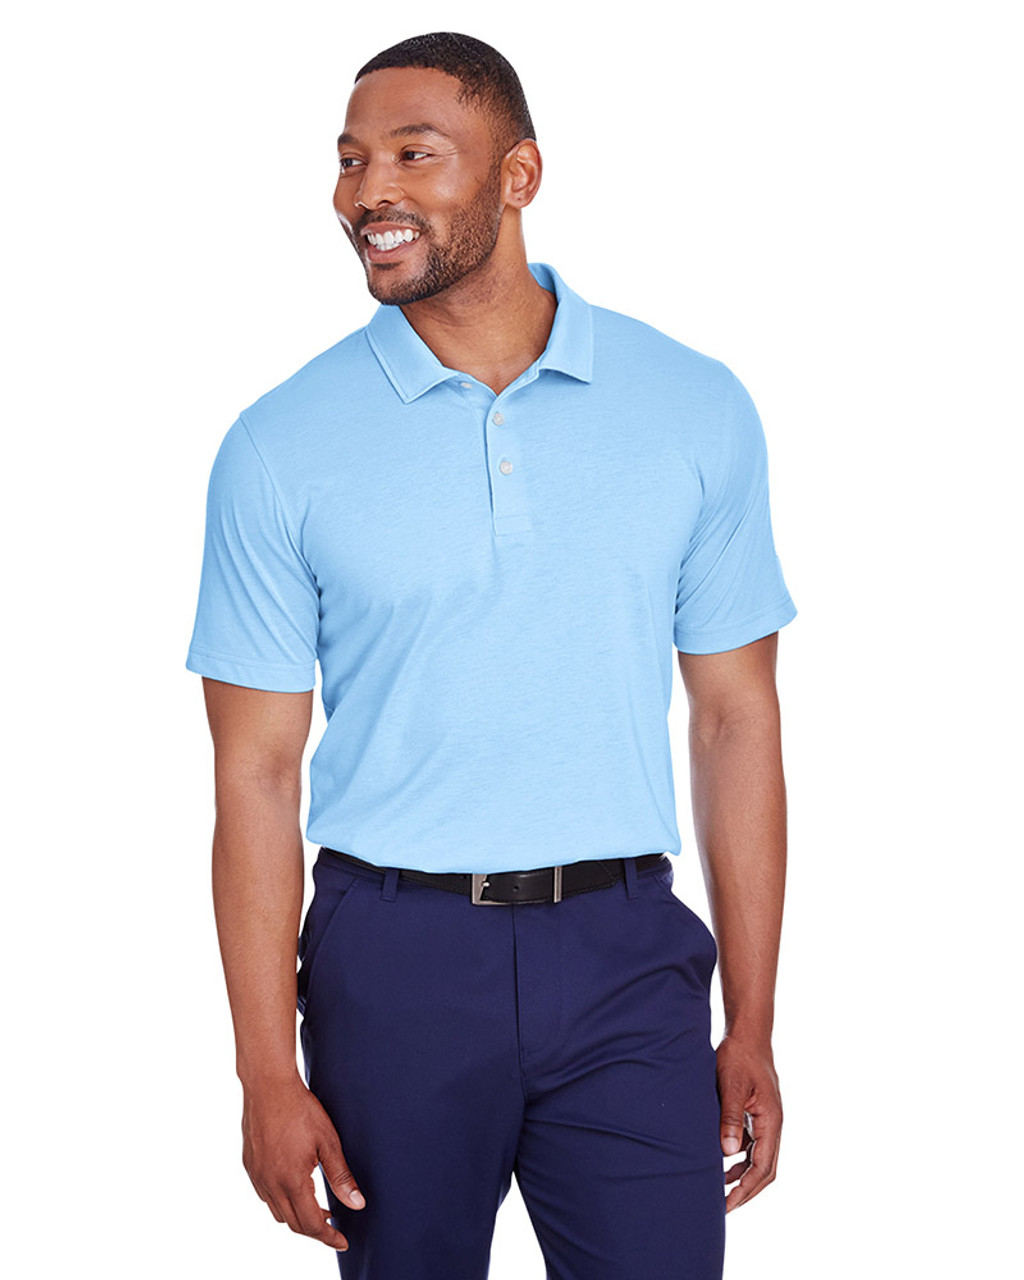 Blue Bell - 596920 Puma Golf Men's Fusion Polo | Blankclothing.ca